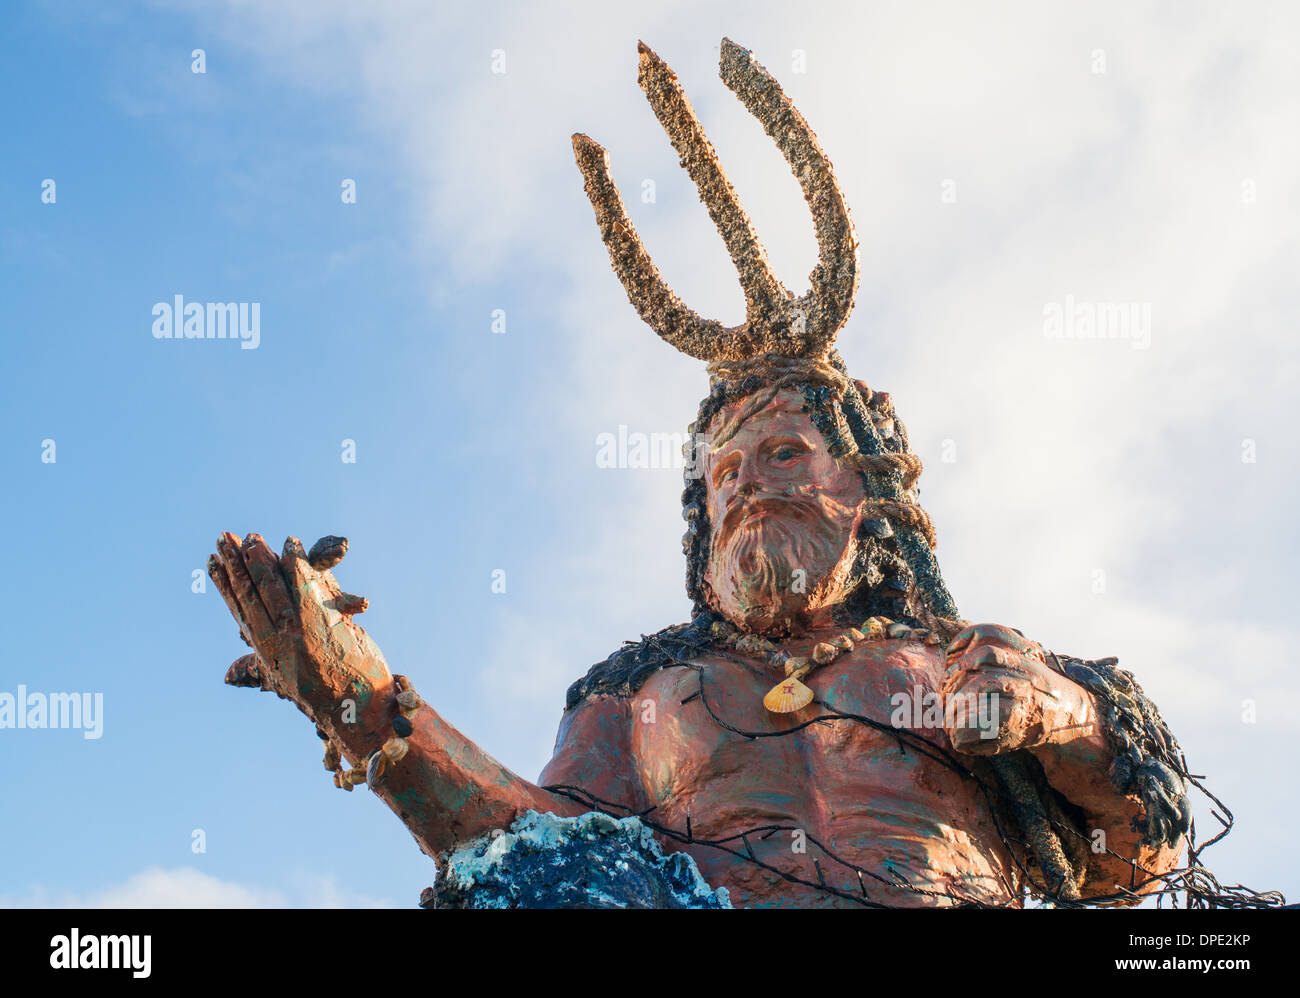 sculpture assumed to be depicting poseidon the greek god of the